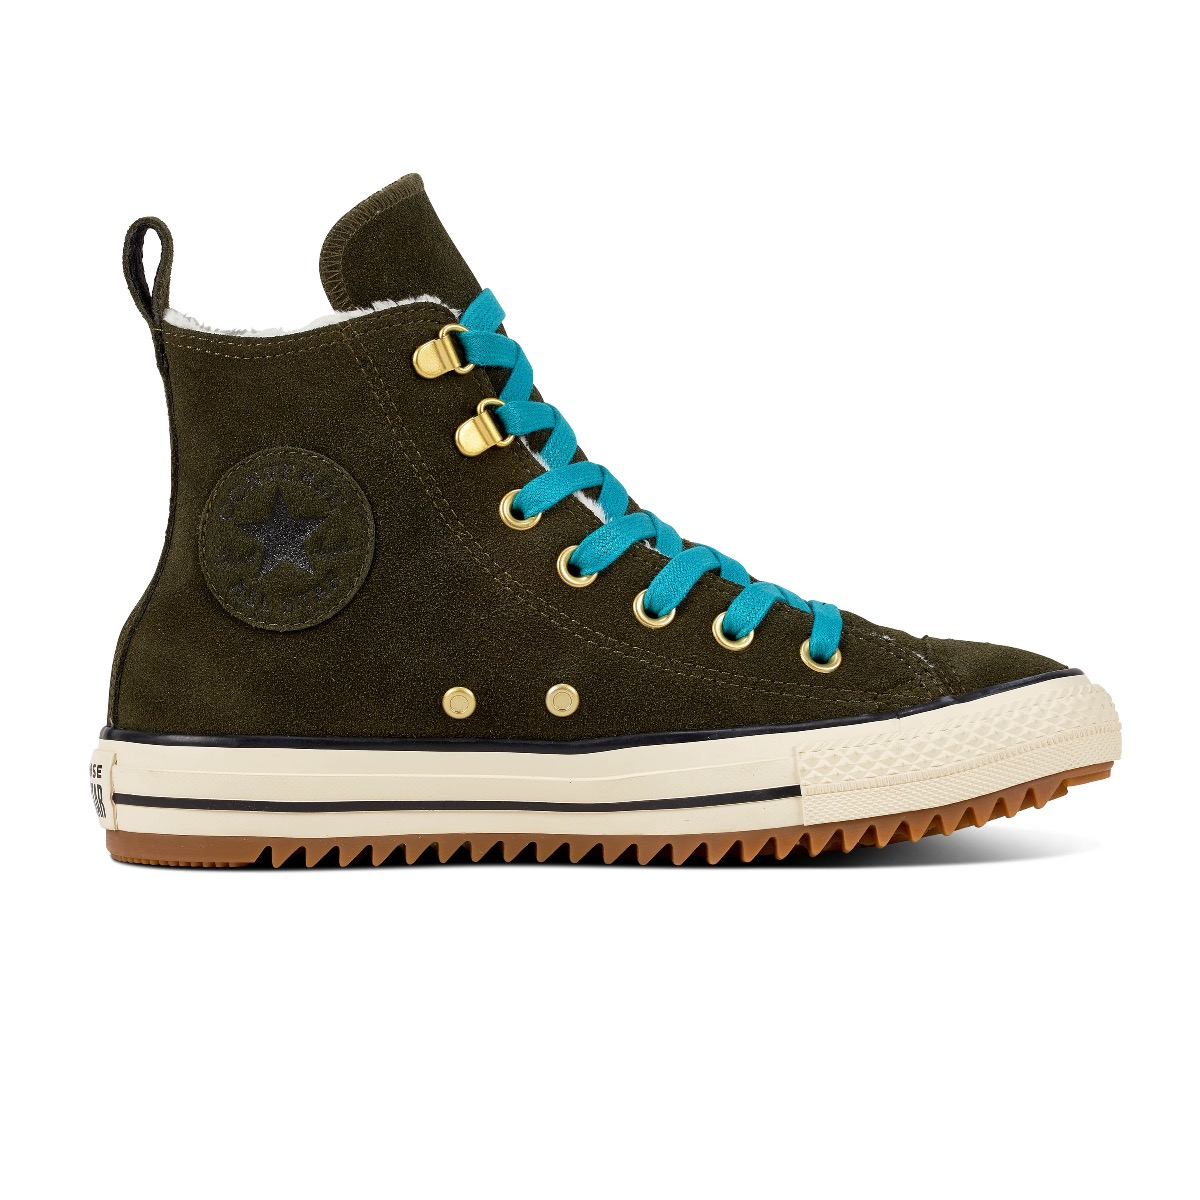 Converse All Stars Hiker Boot 162478C Groen-37